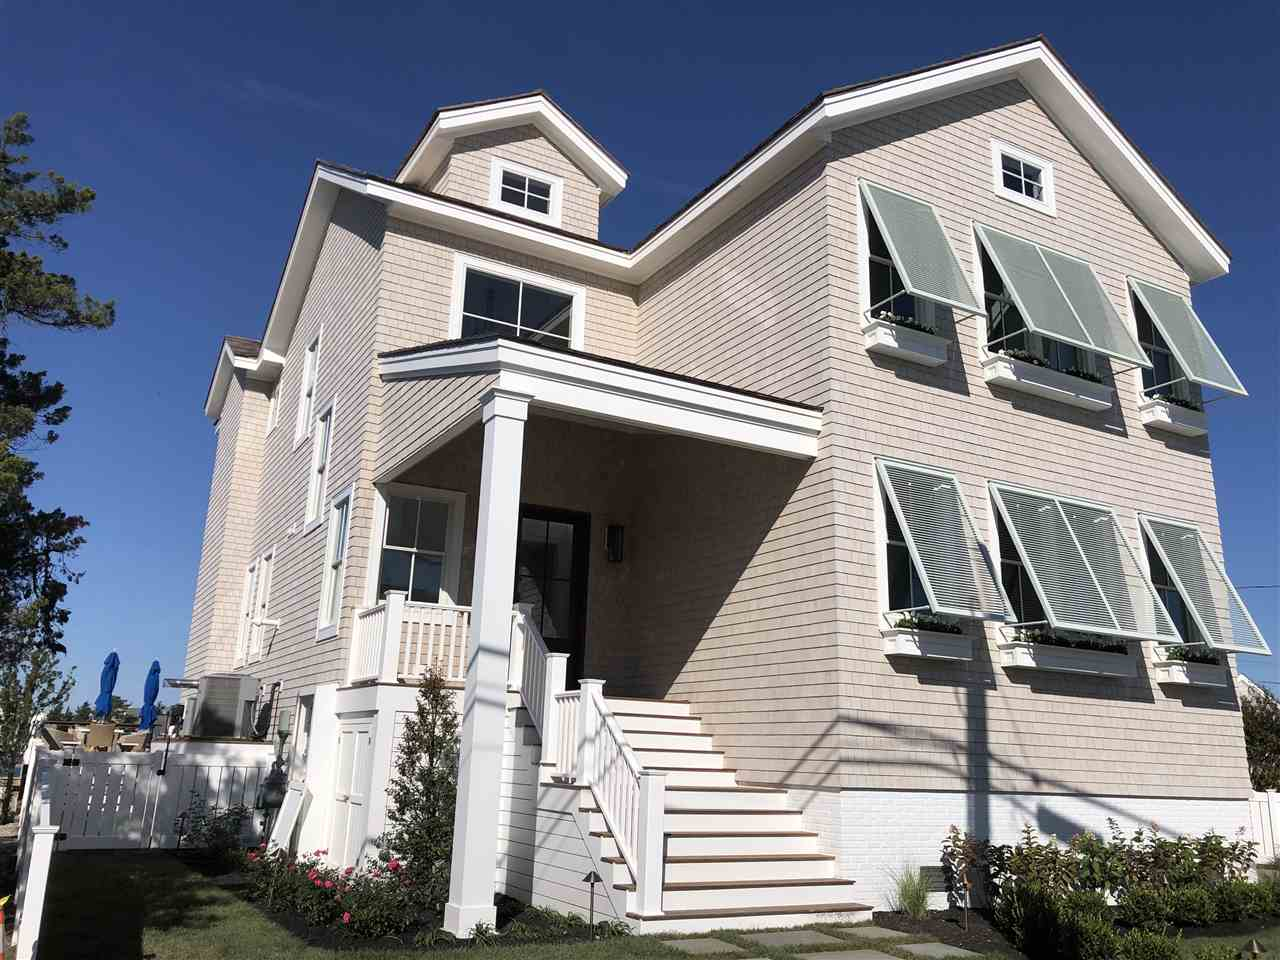 10403 Third Ave, Stone Harbor, NJ 08247